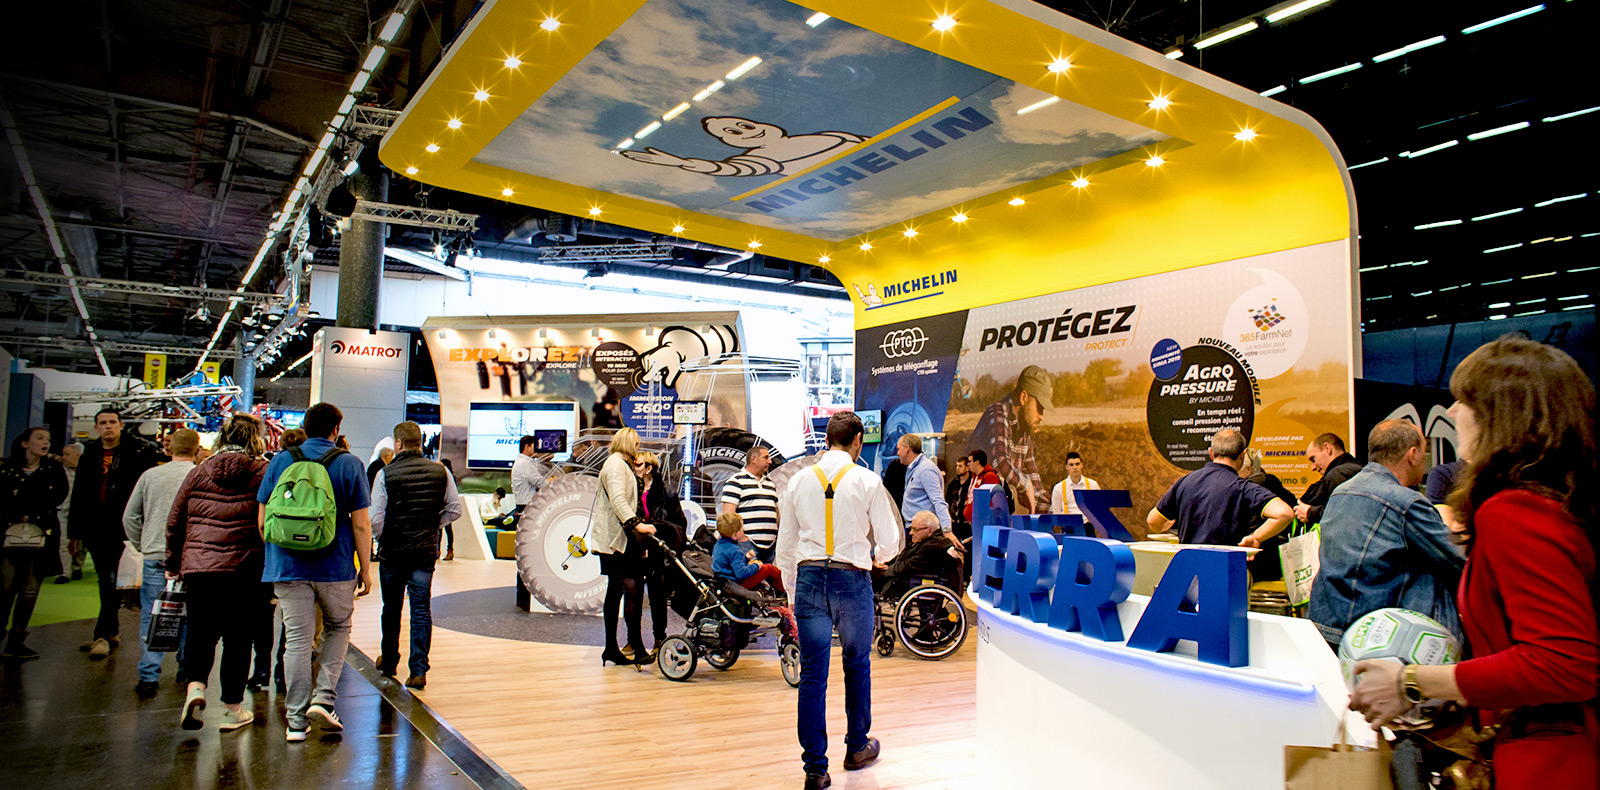 Michelin supporting farmers and sustainable mobility